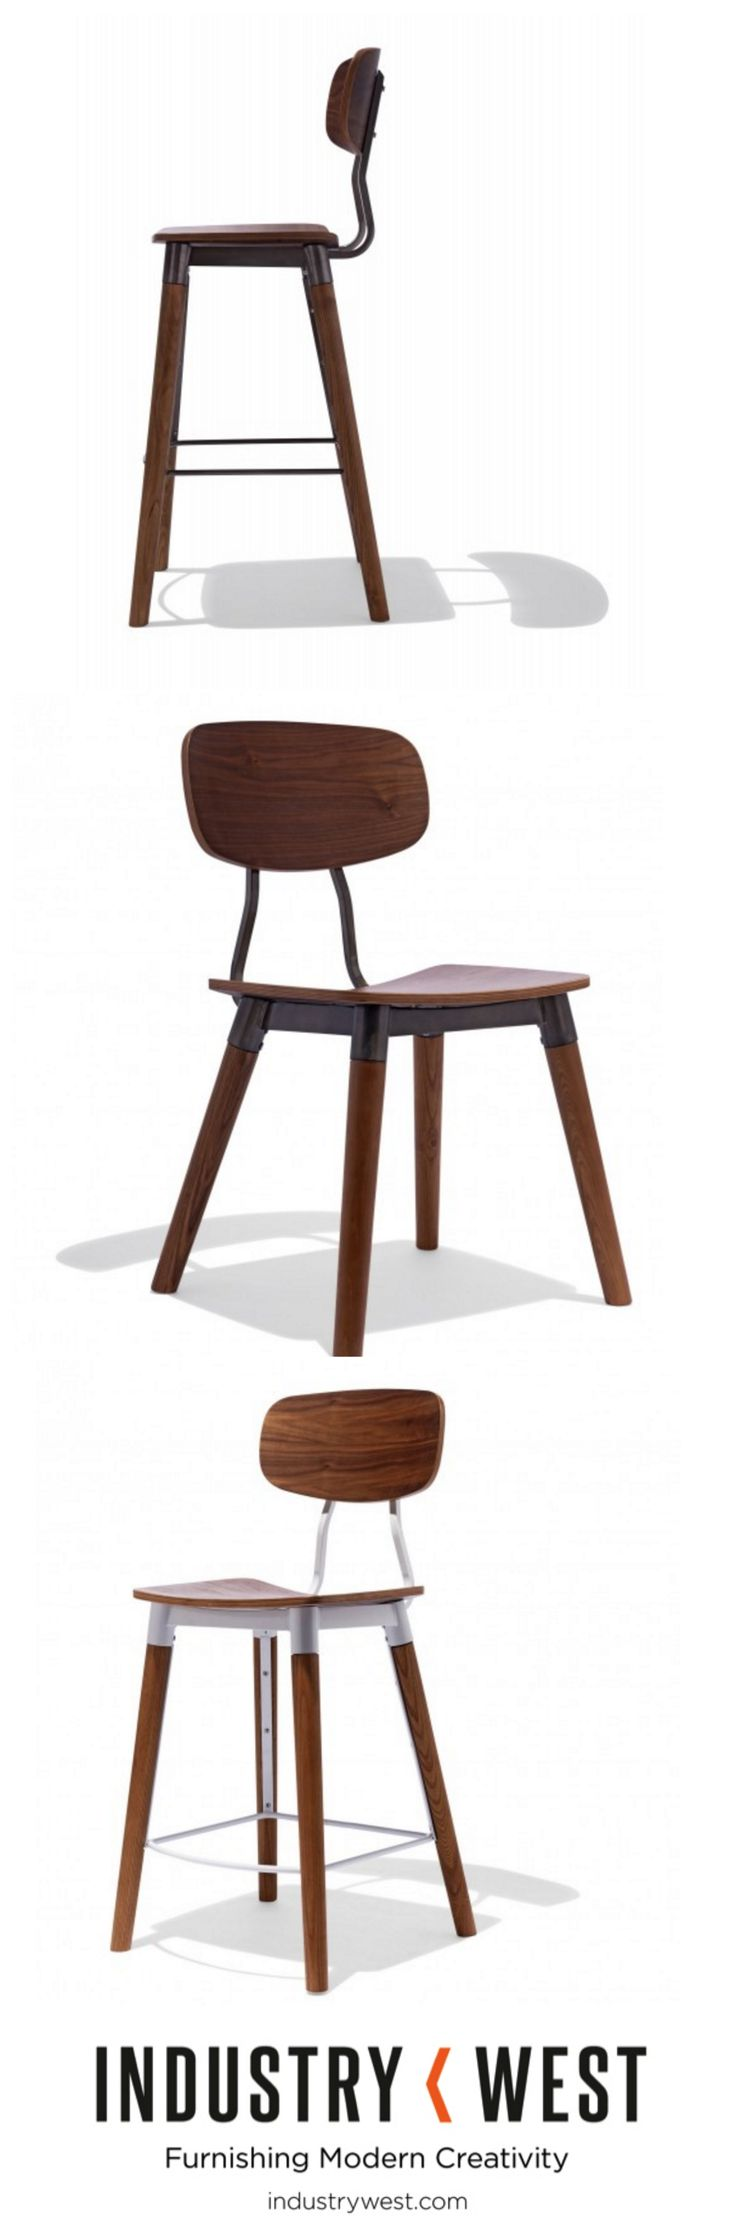 Shop Our Wooden Slat Furniture For Benches, Stools, And Tables For Any  Modern Home Or Office.